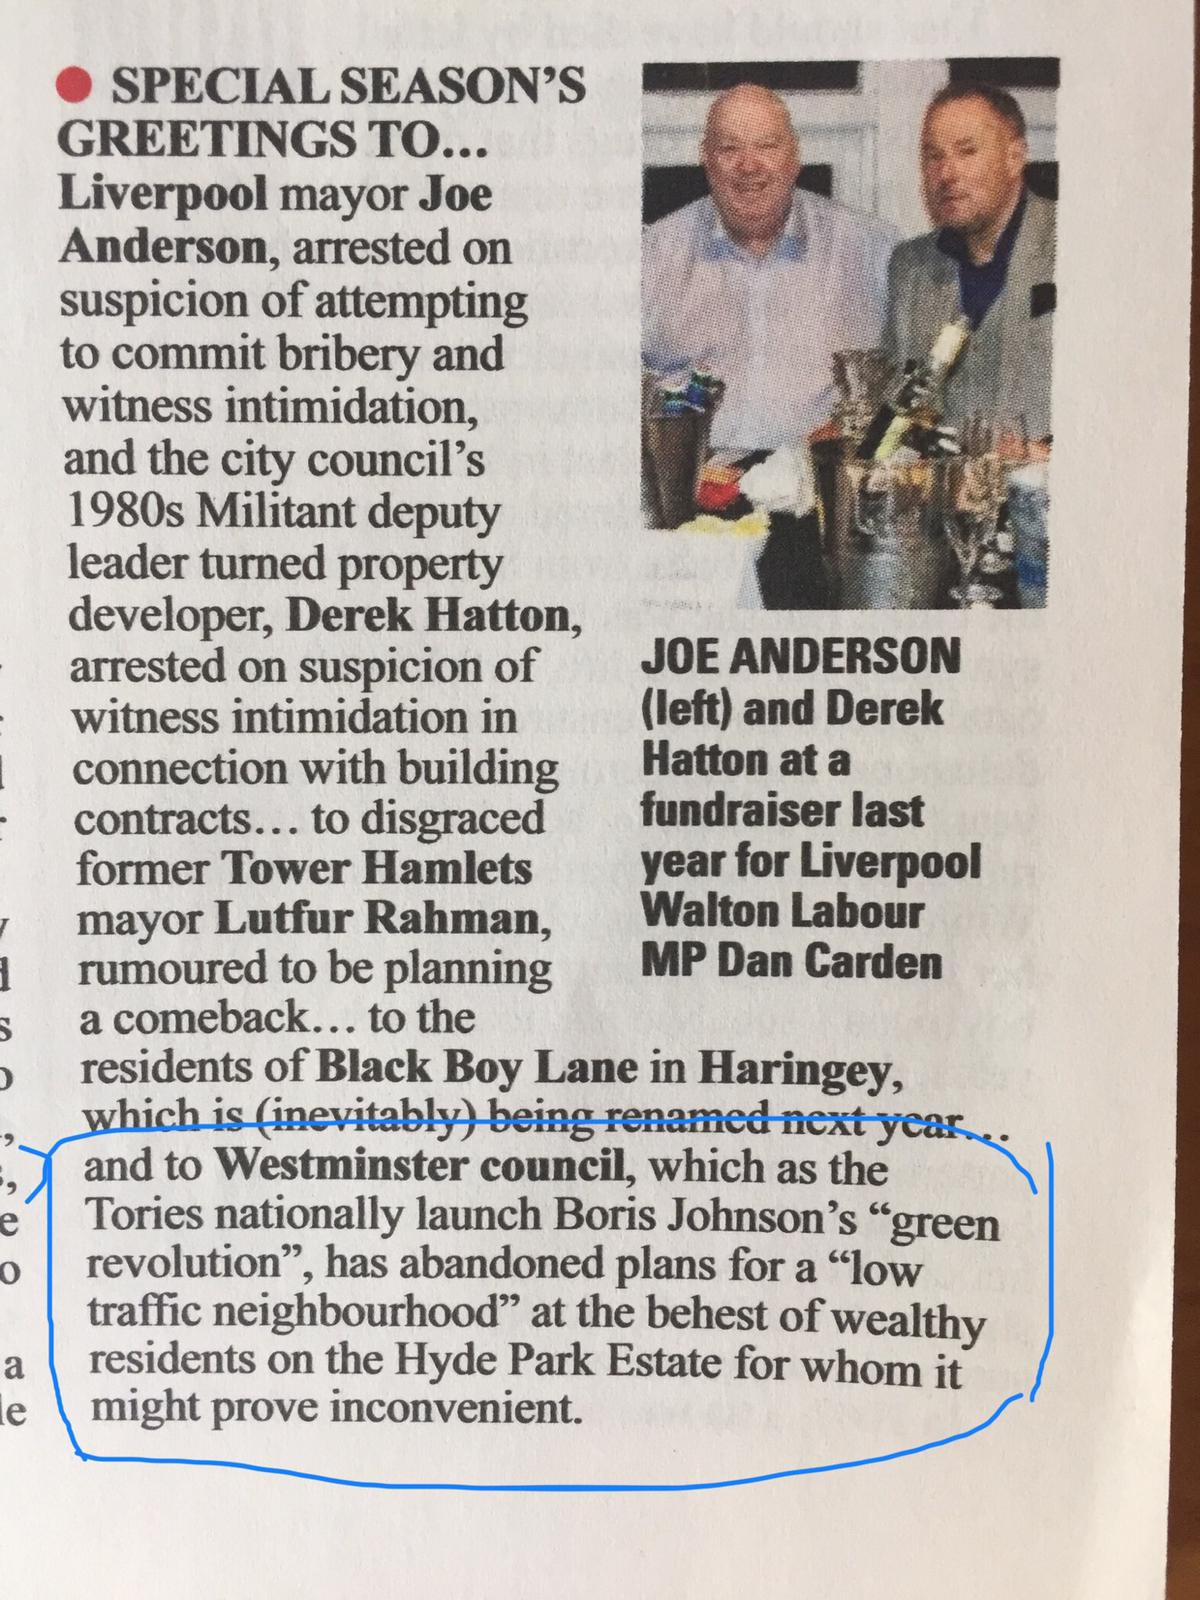 A photo of Private Eye's article about the cancellation of the Hyde Park Estate LTN